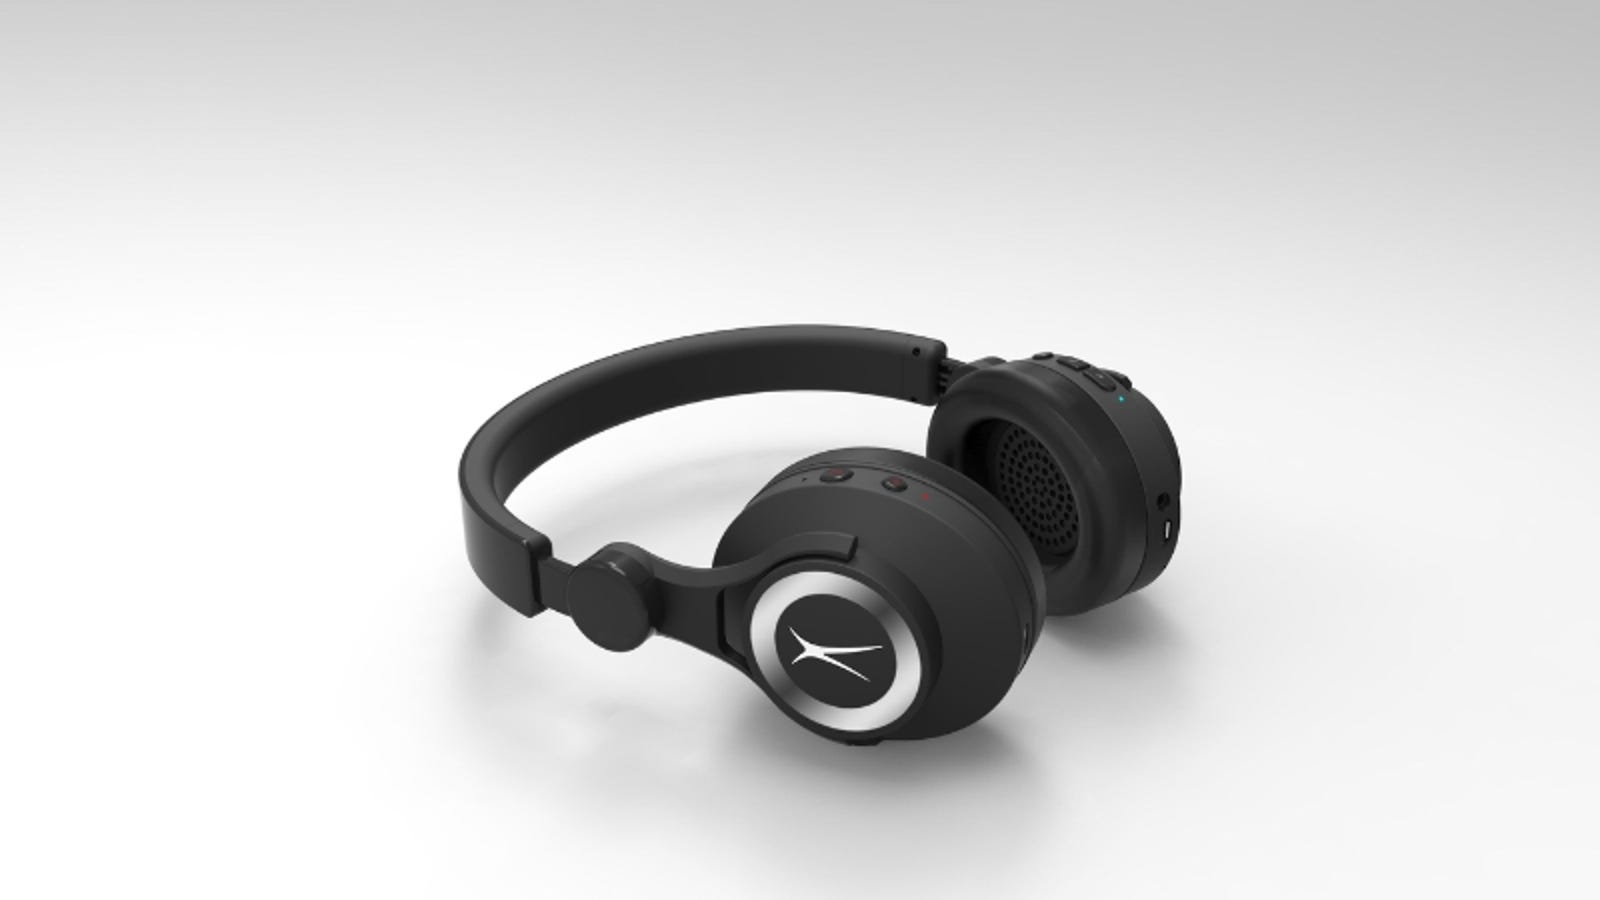 kz earbuds noise cancelling - This Company Should Be Punished for Putting a Camera in a DJ Headset